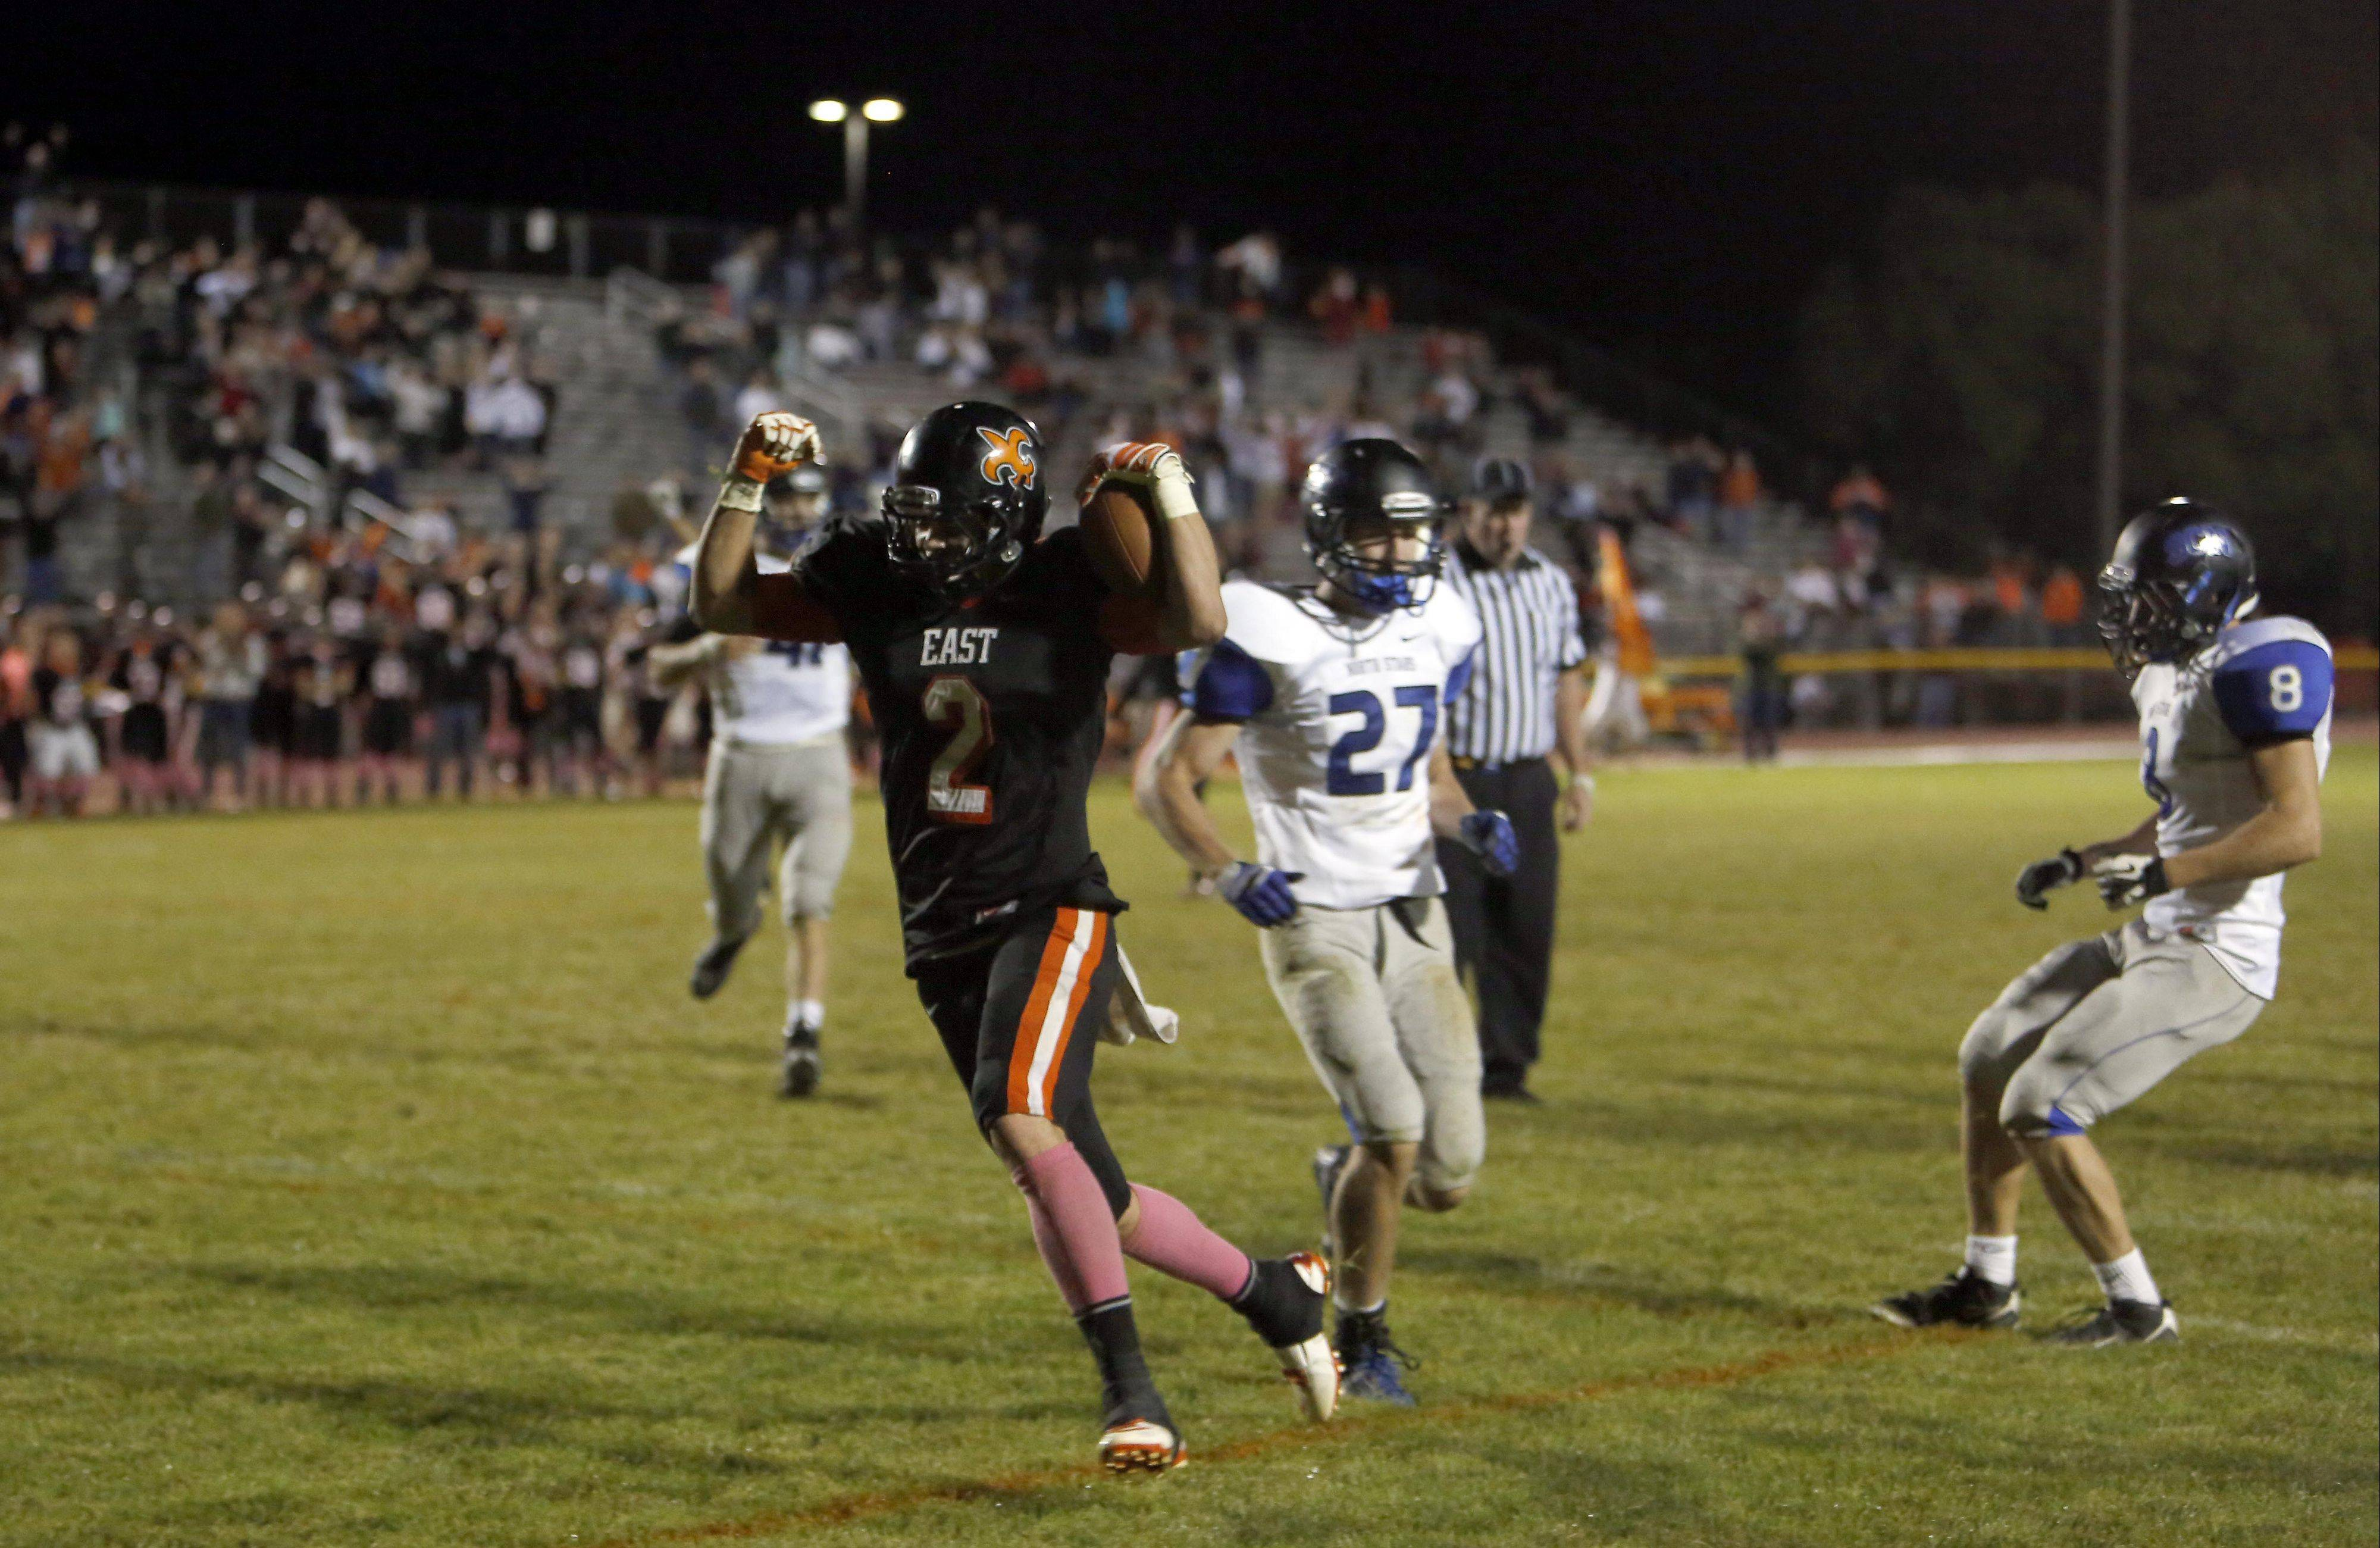 St. Charles East rallies for OT win